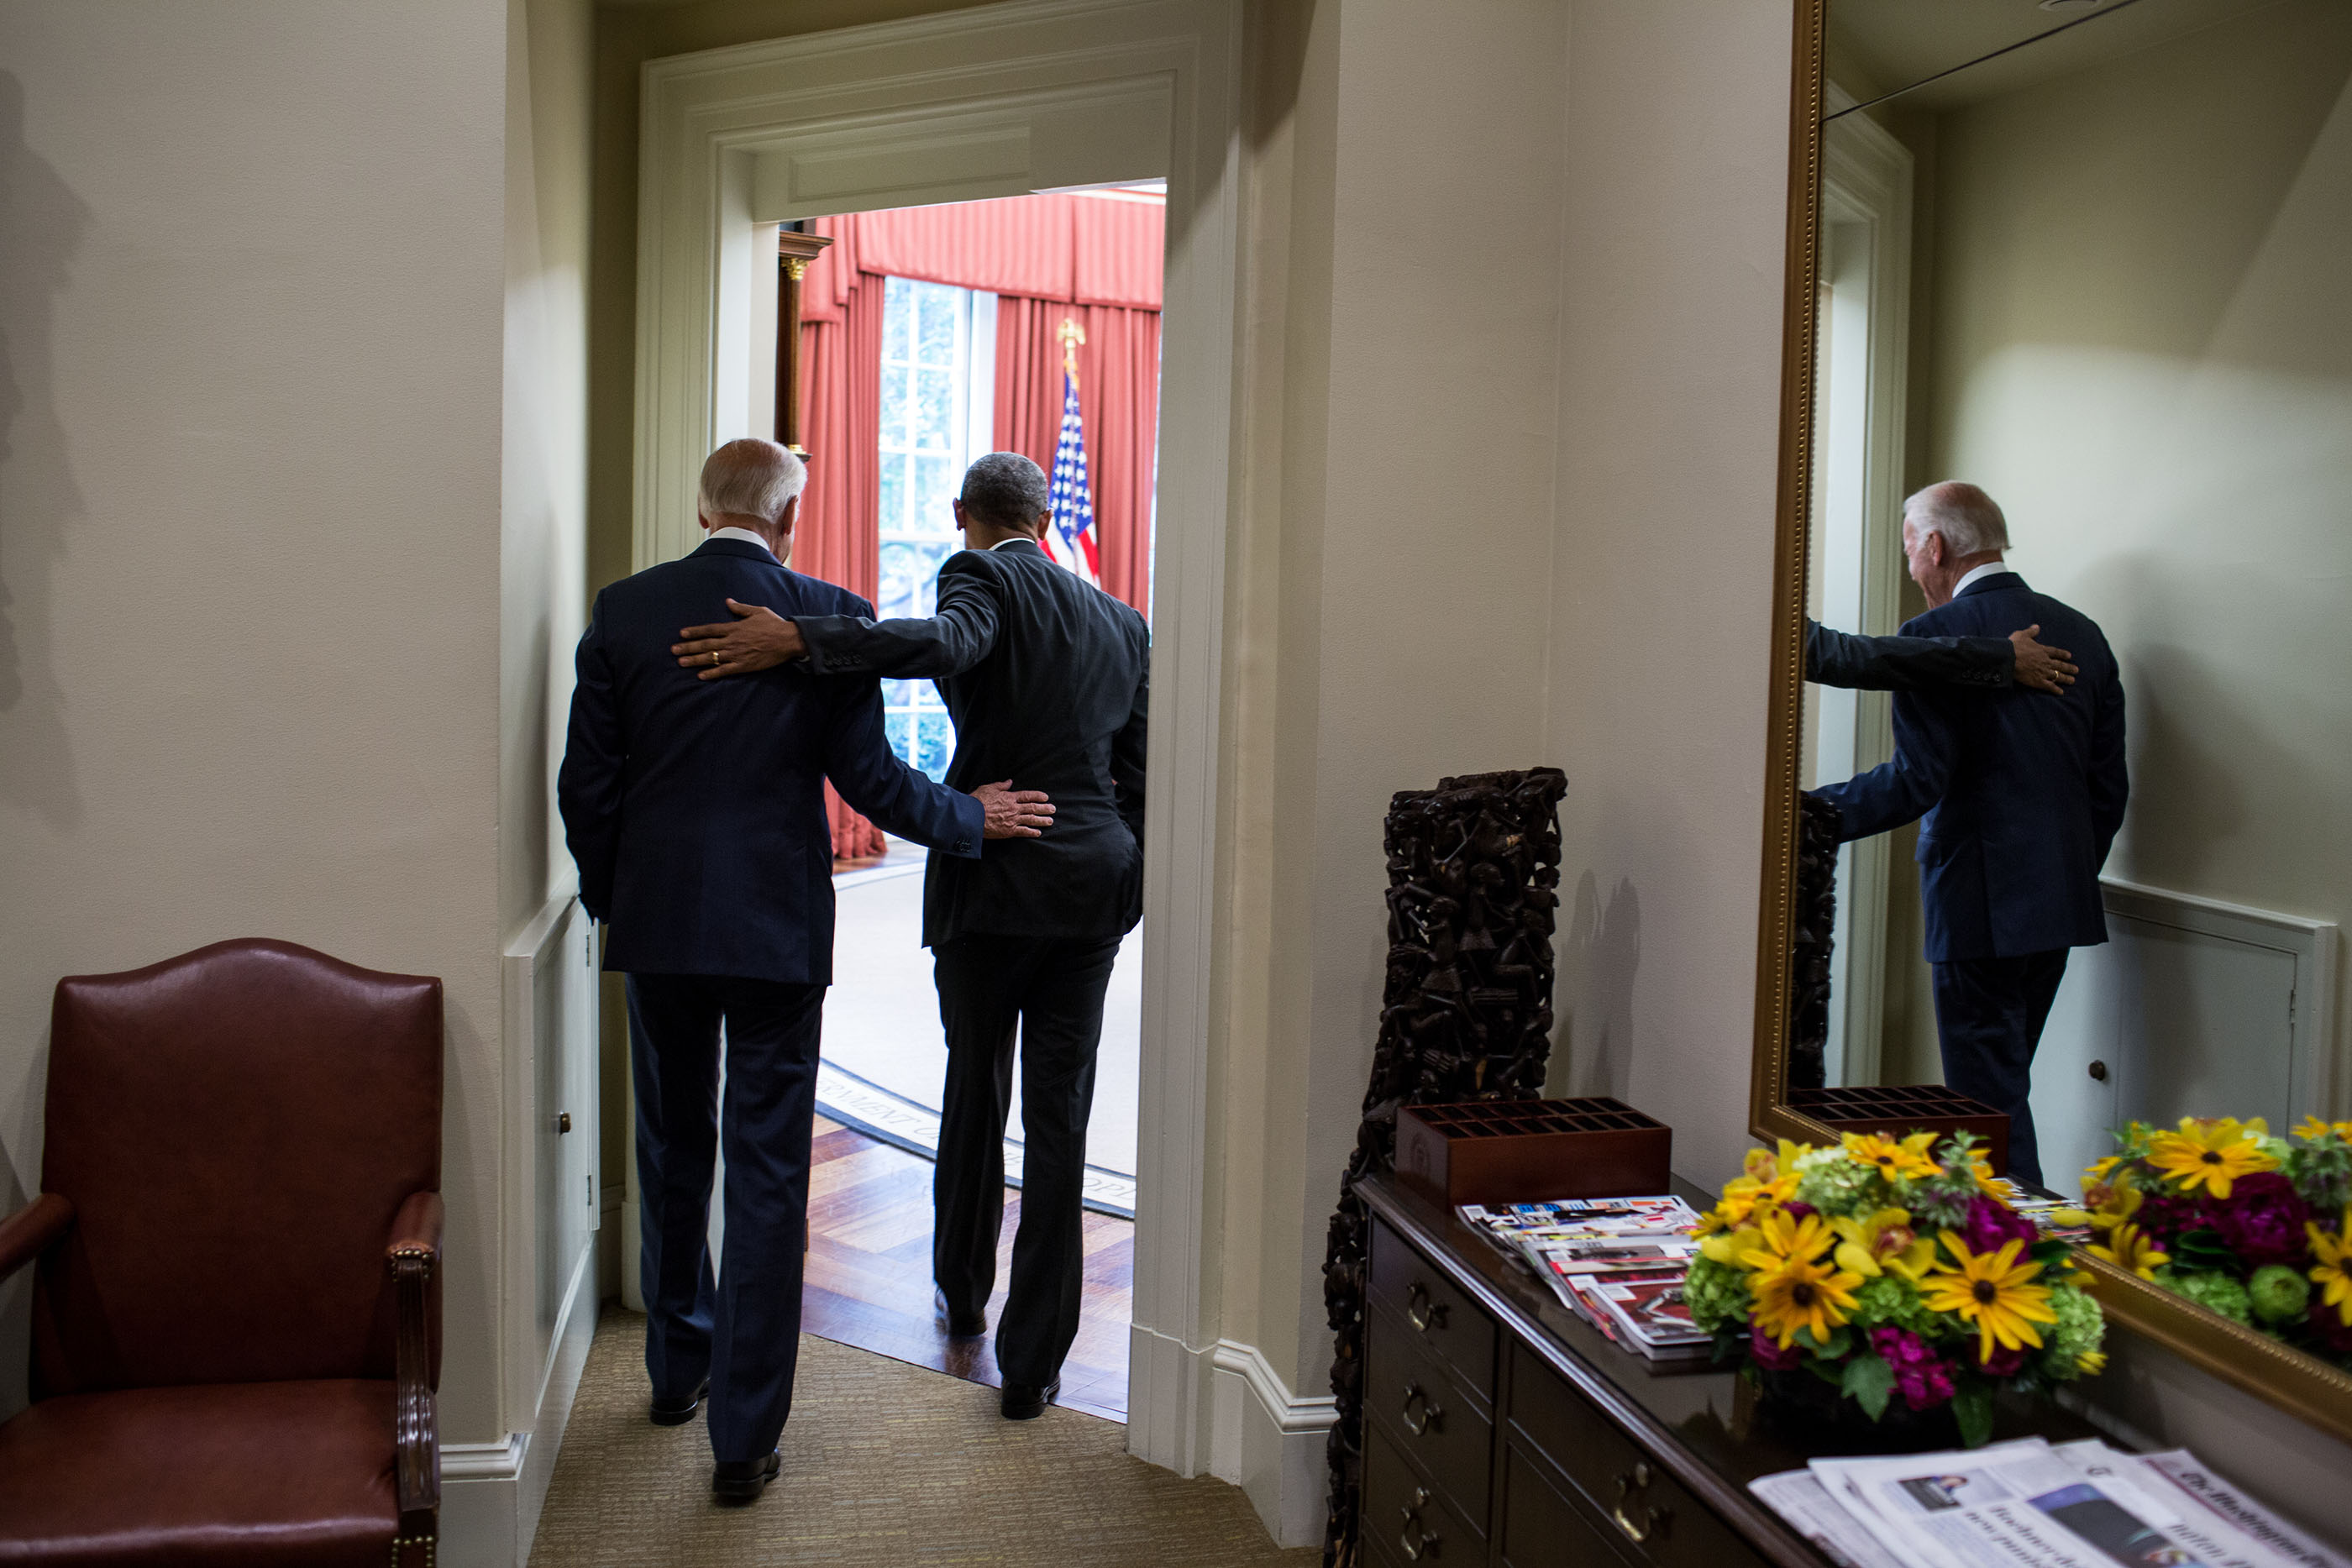 President and Vice President Walk Out After Affordable Care Act Decision